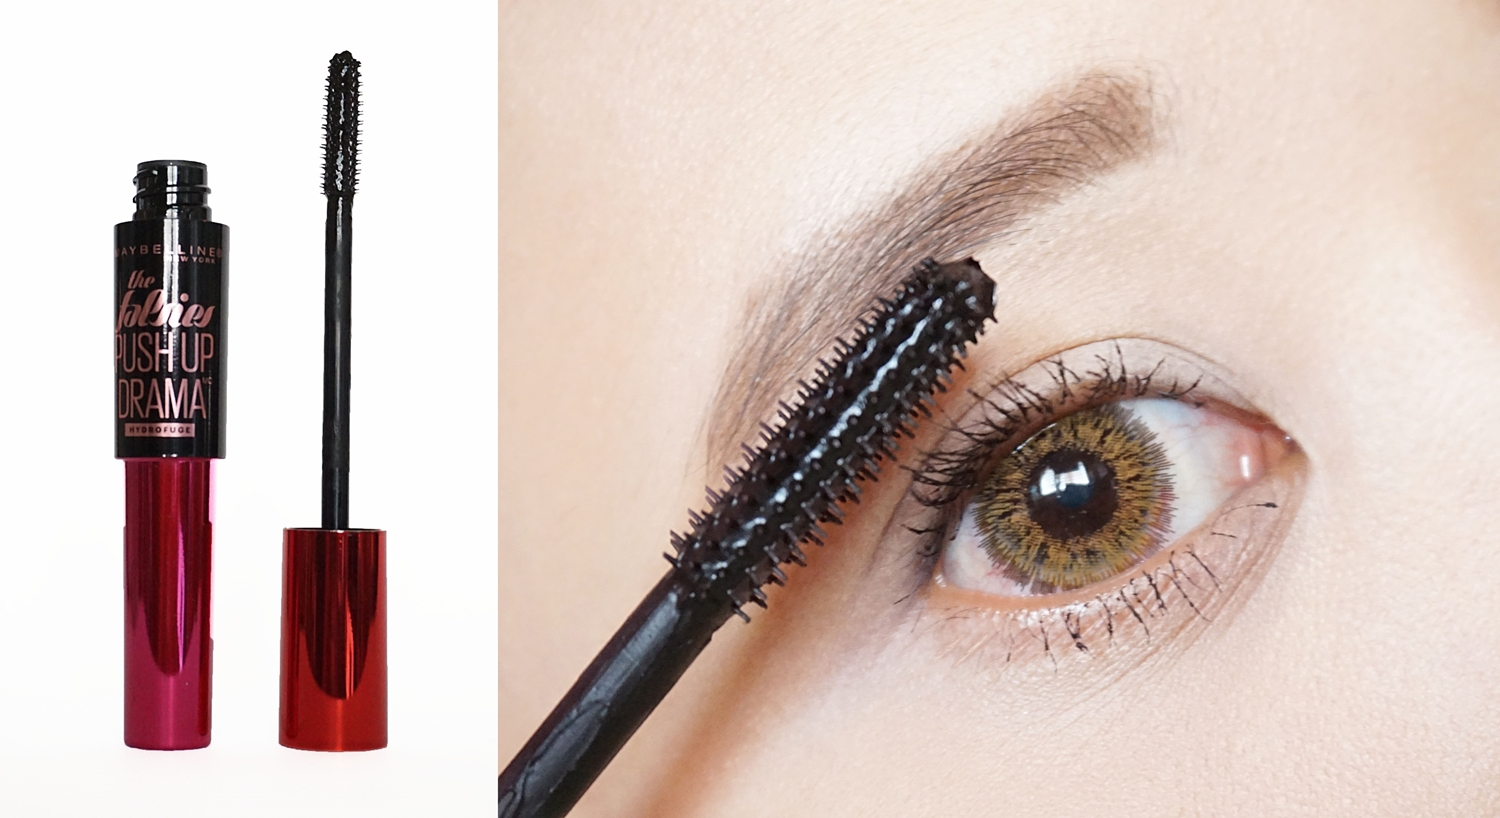 Maybelline The Falsies Push Up Drama Mascara Waterproof [#Super Black] Review